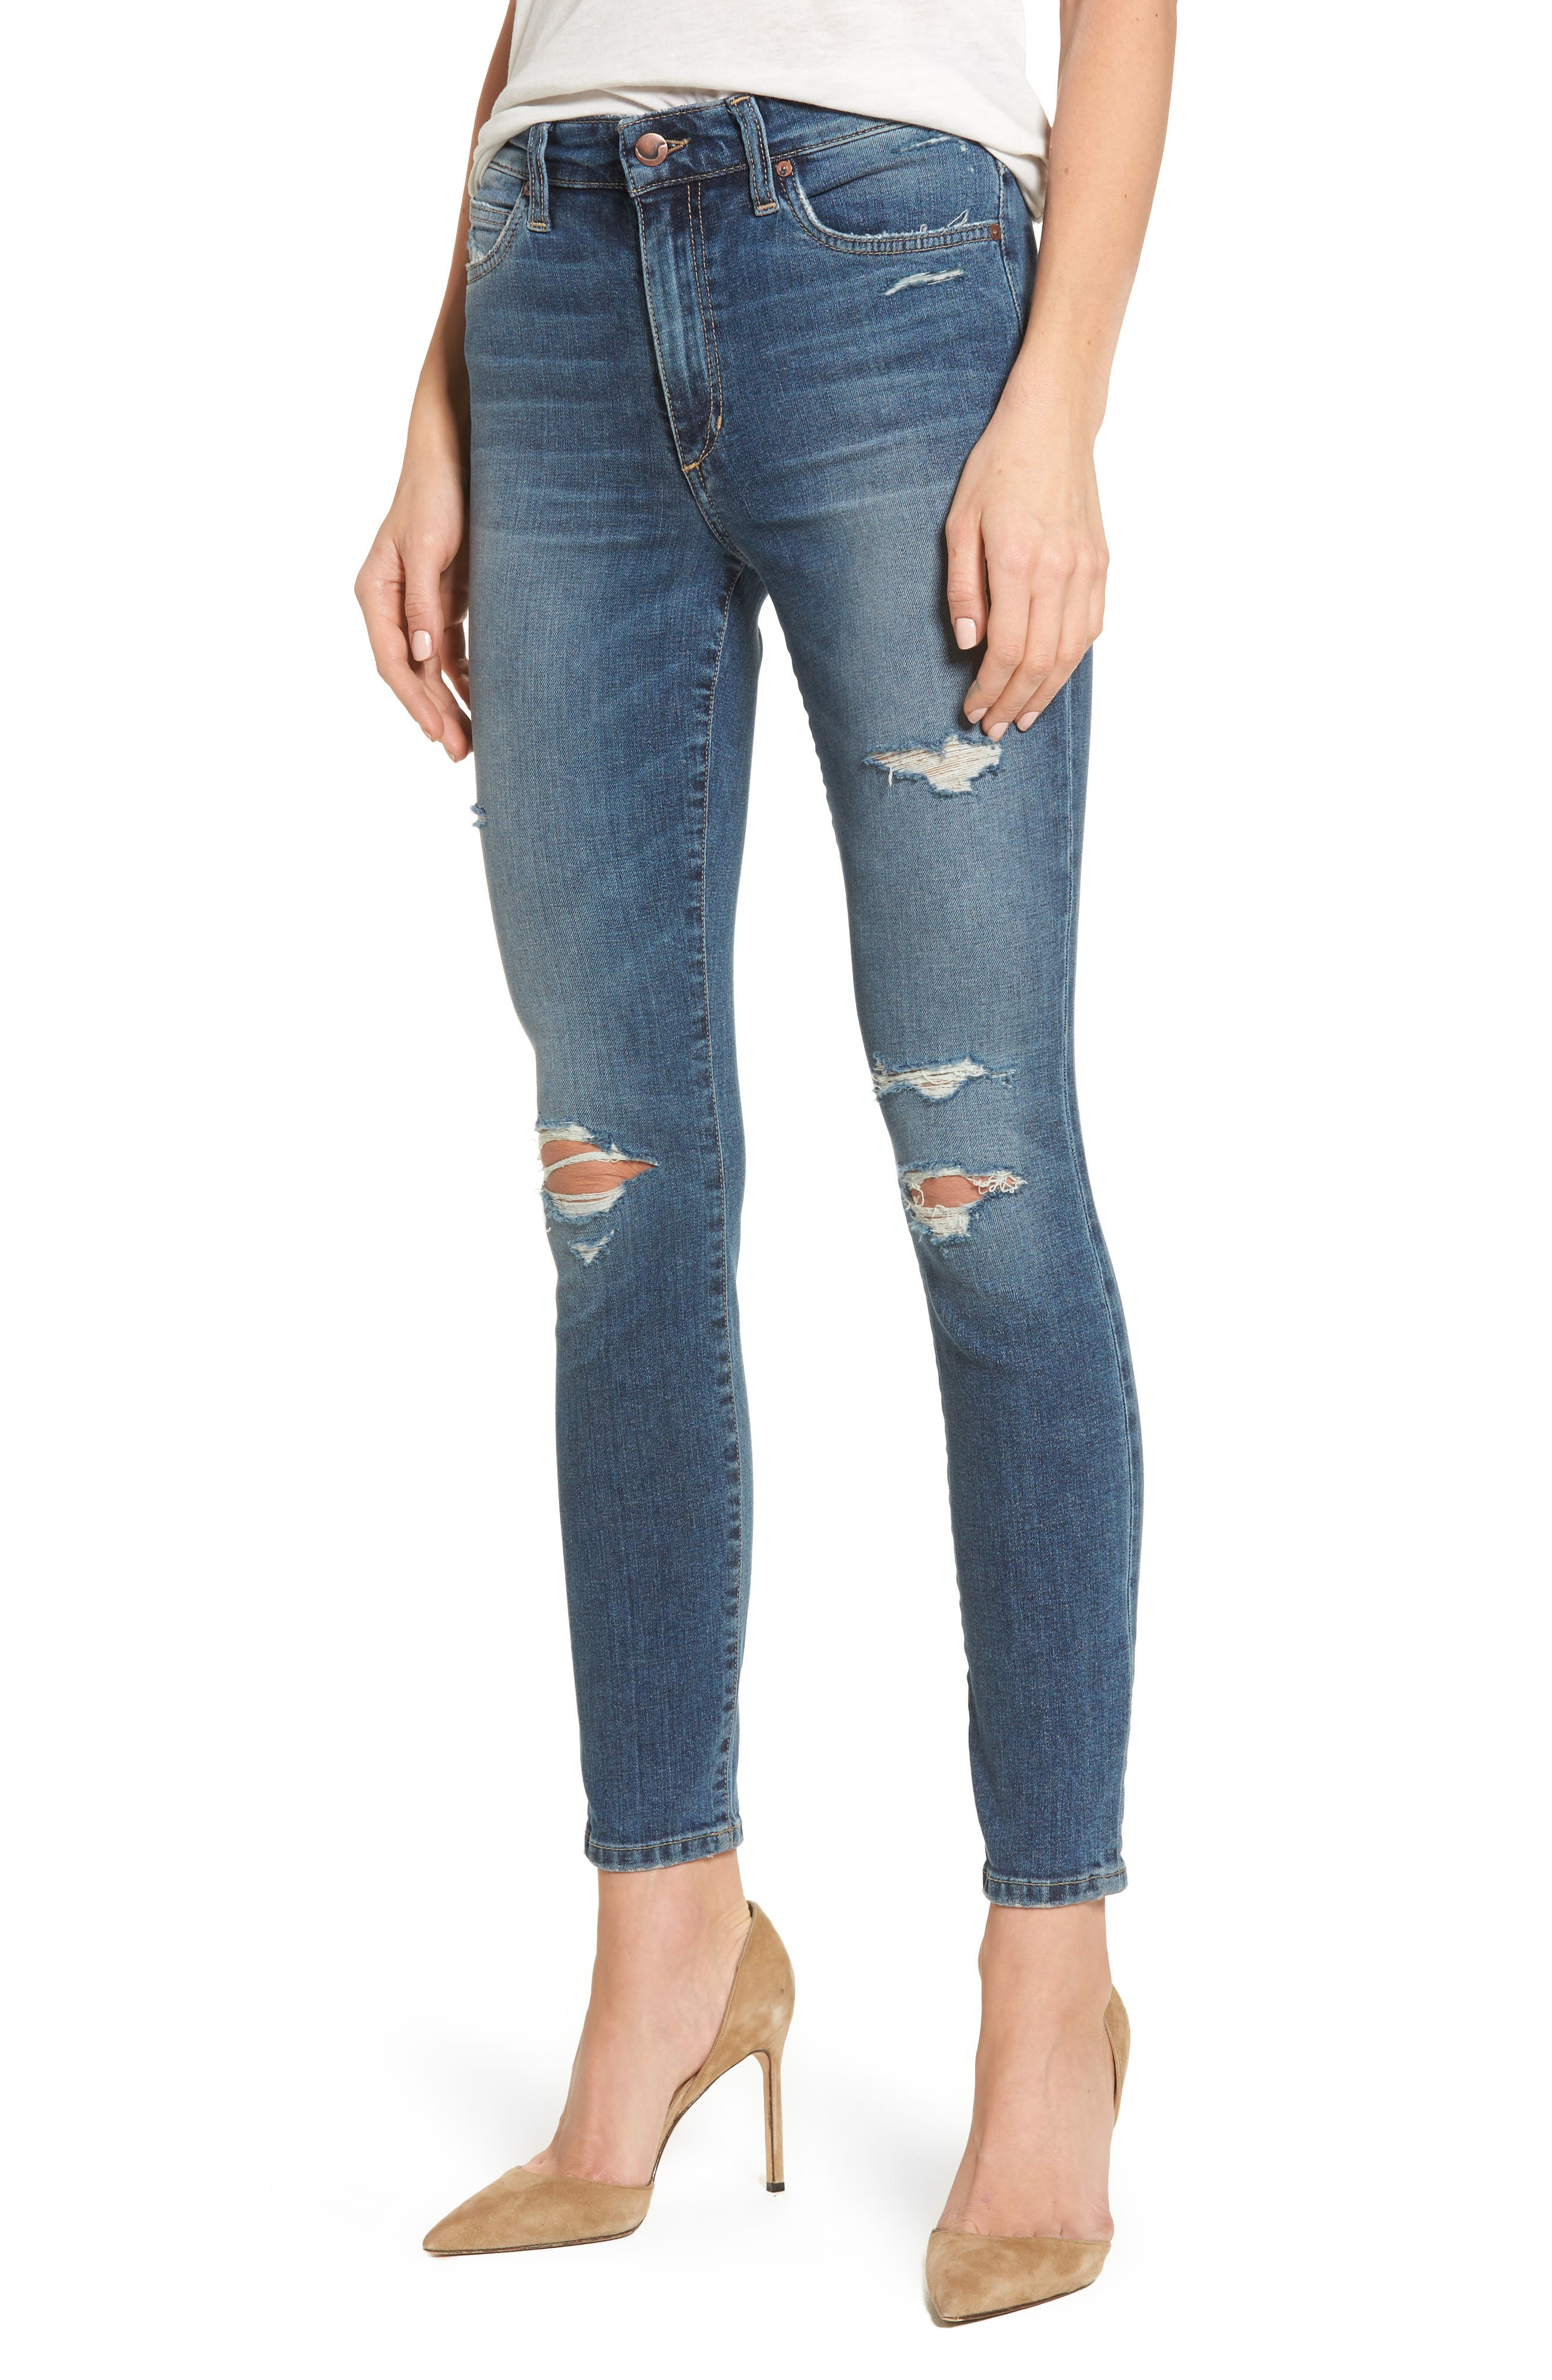 Charlie High Waist Ankle Skinny Jeans,                             Main thumbnail 1, color,                             415